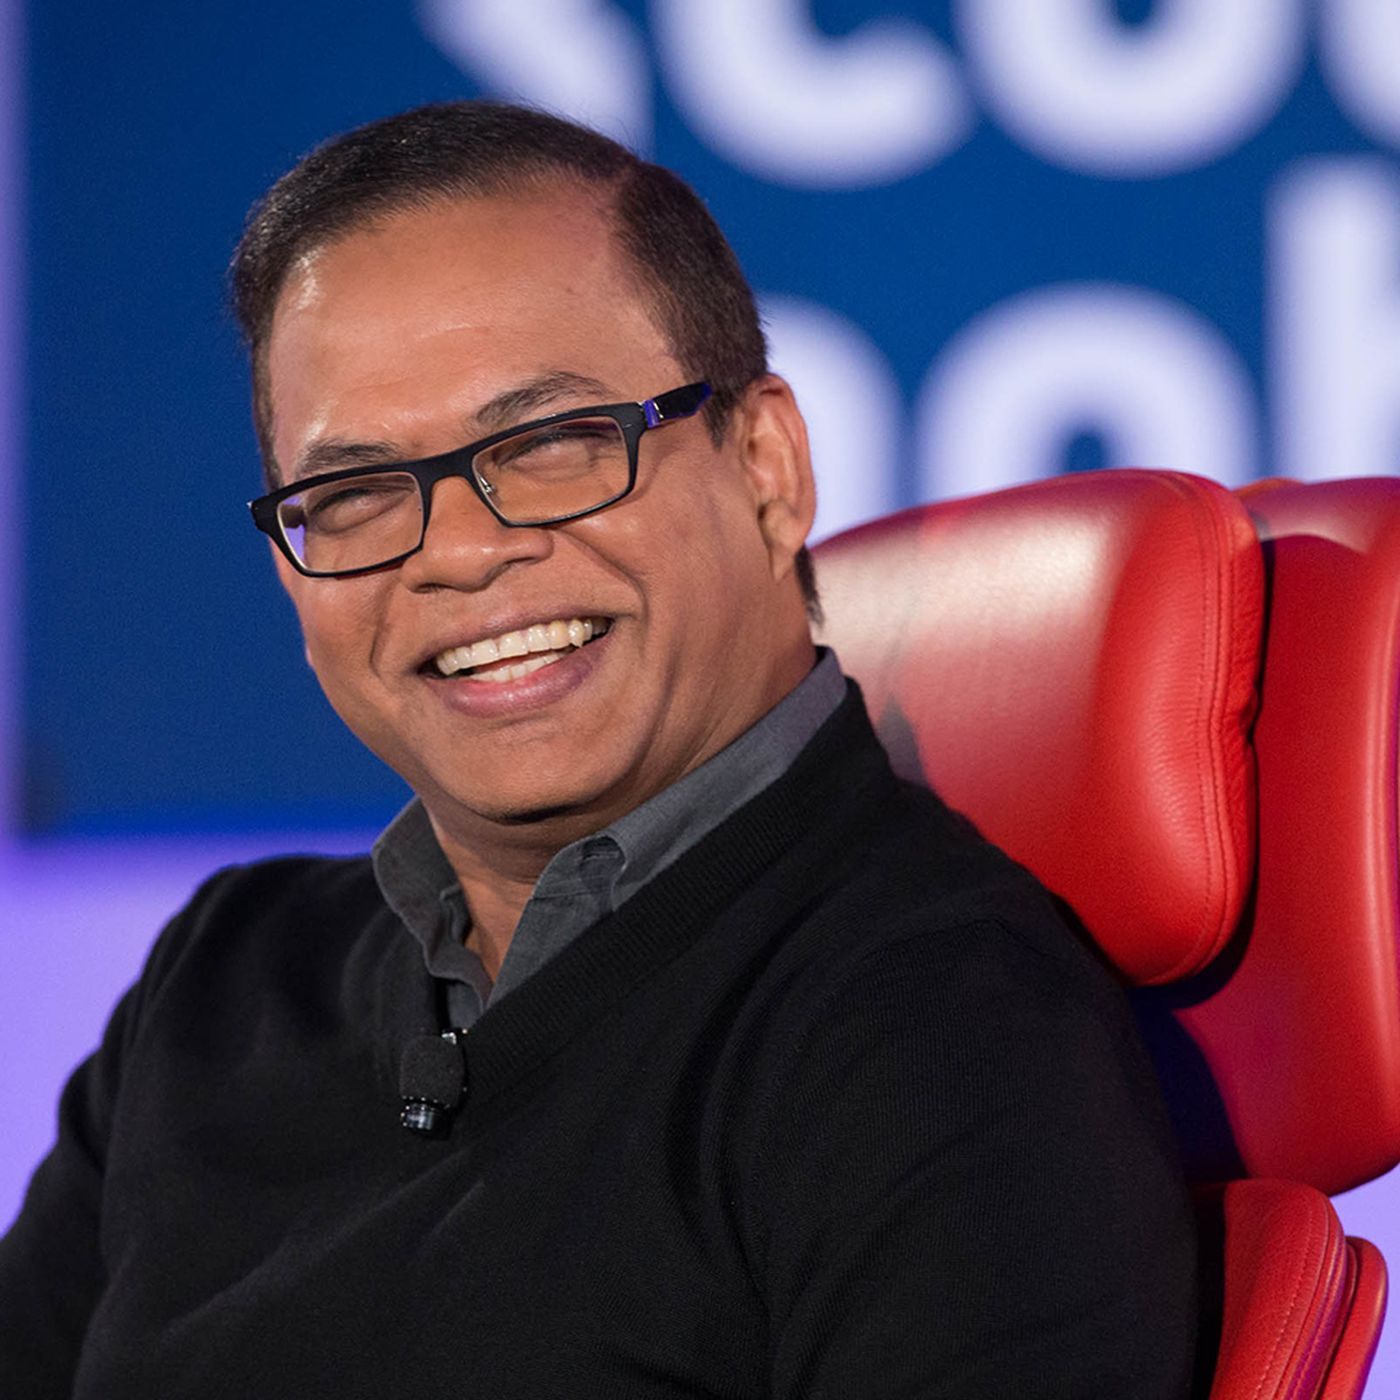 The 51-year old son of father (?) and mother(?) Amit Singhal in 2020 photo. Amit Singhal earned a million dollar salary - leaving the net worth at million in 2020